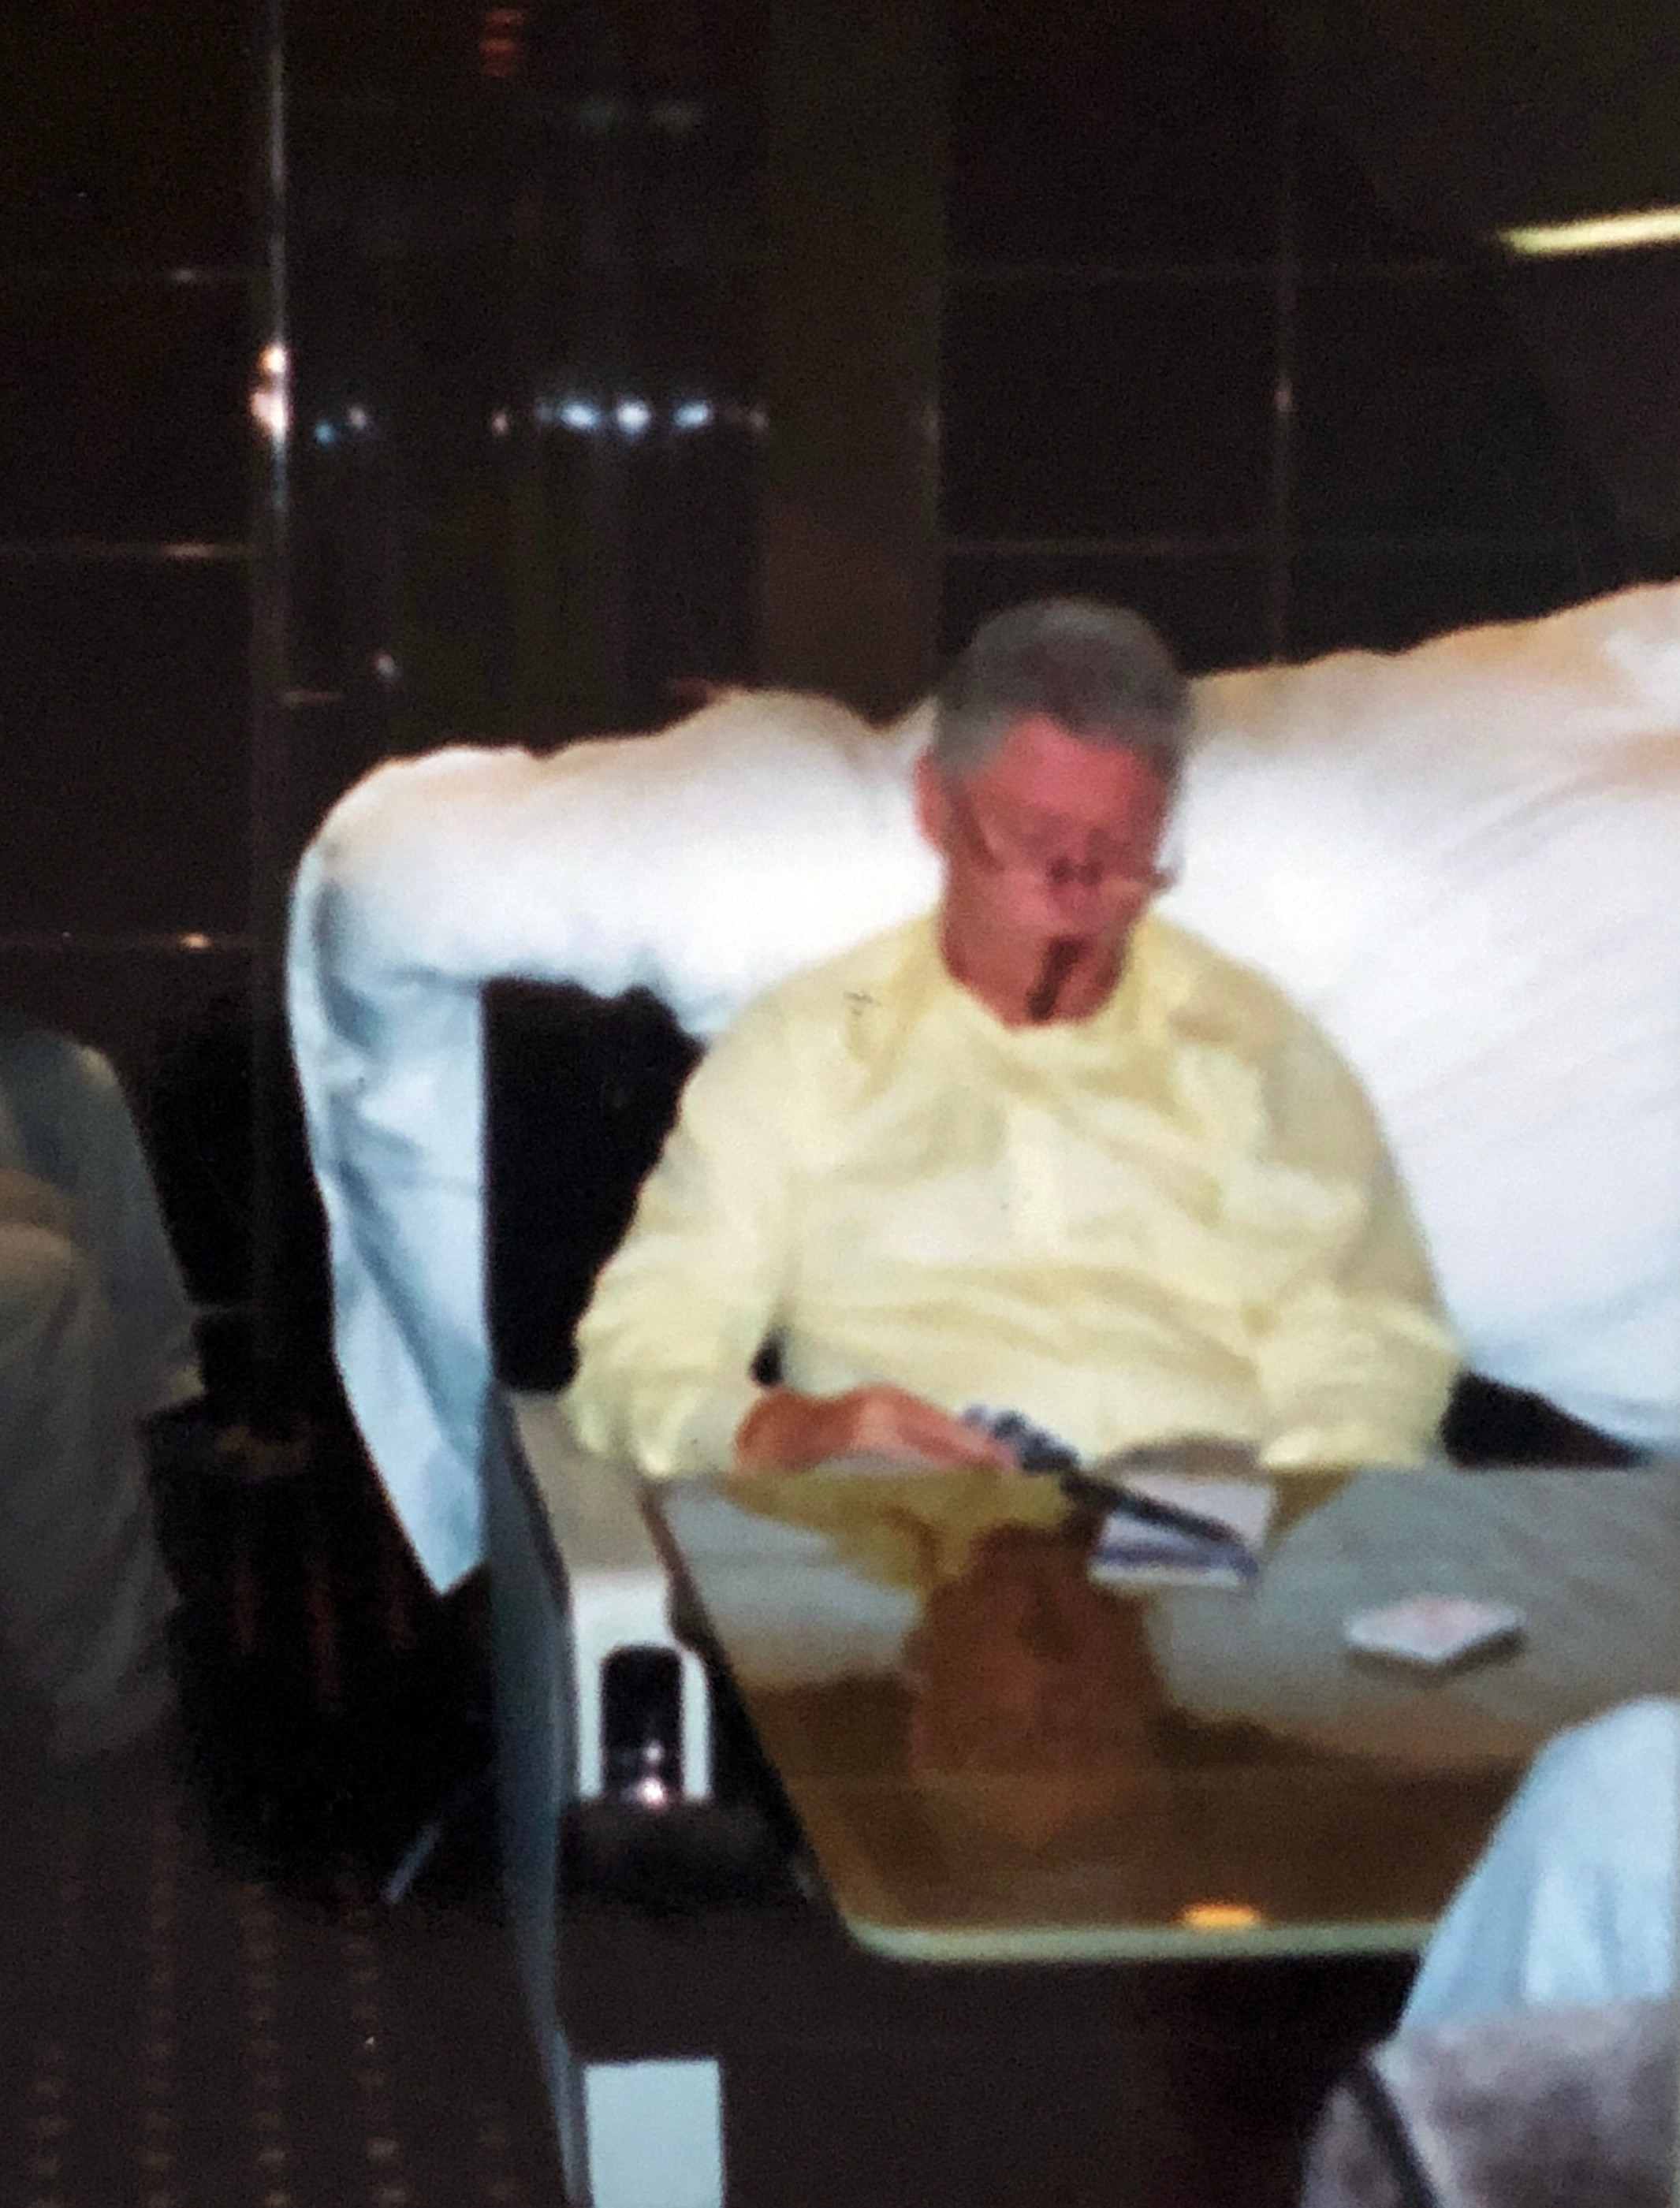 Bill Clinton chomps on a cigar on board Epstein's luxurious private jet